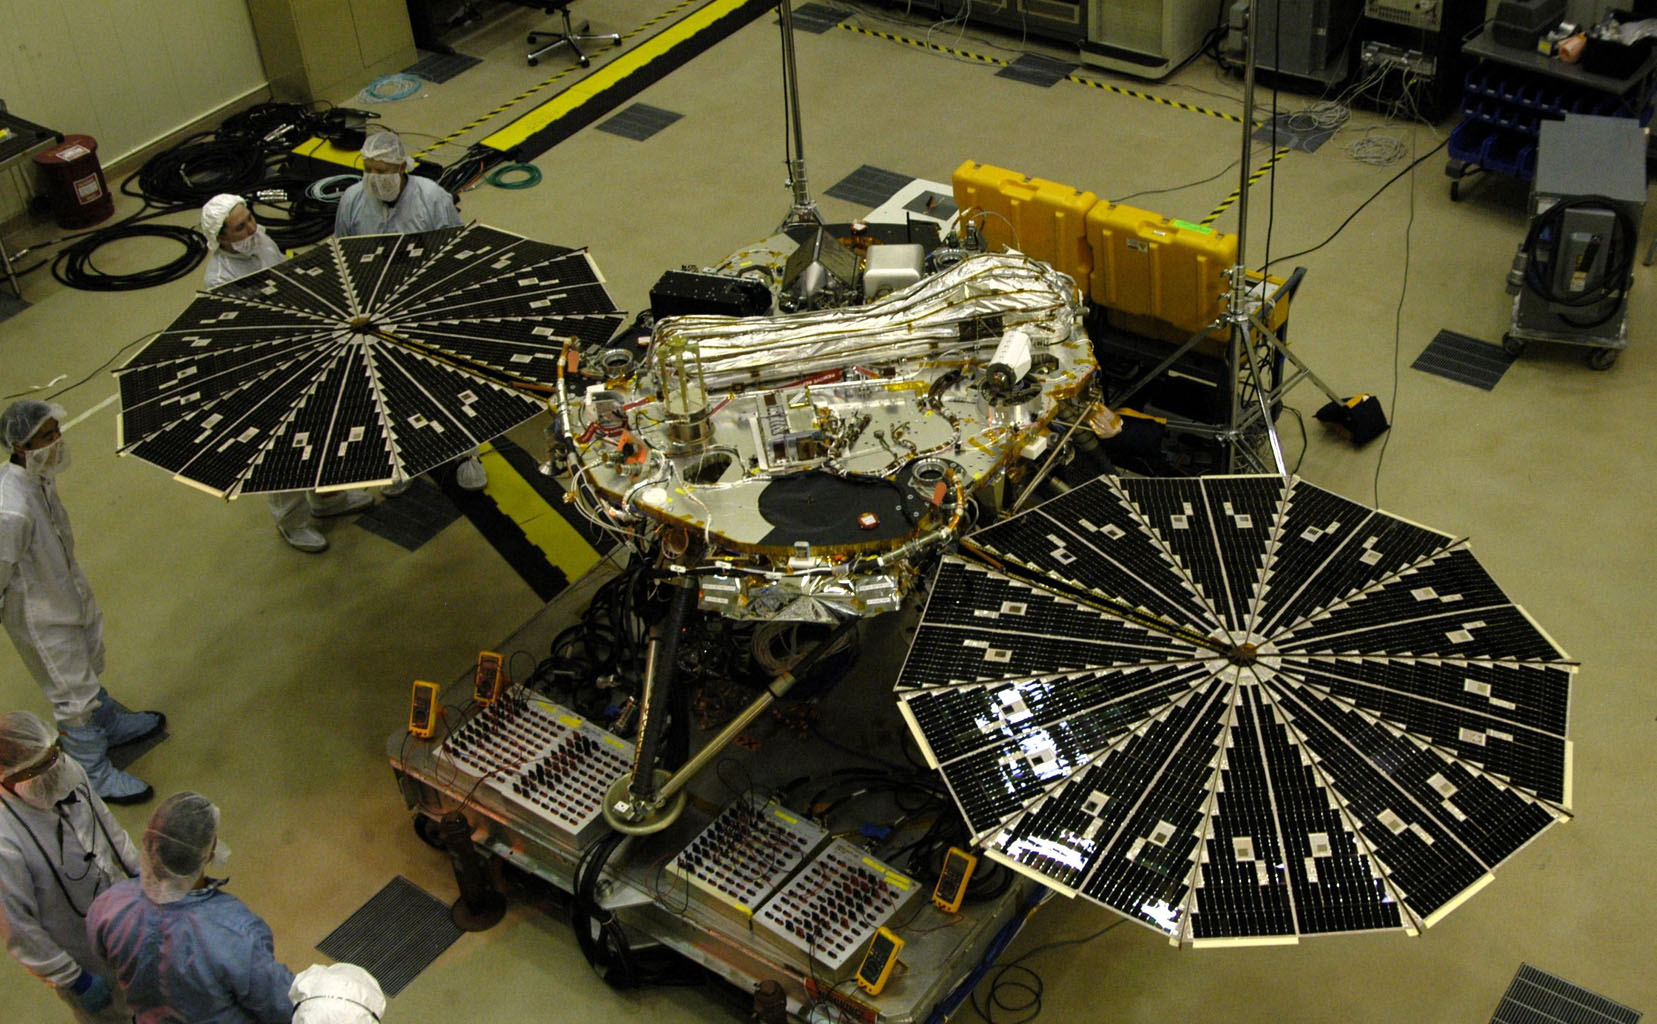 NASA Mars Phoenix lander spacecraft Lockheed Martin NASA image posted on SpaceFlight Insider